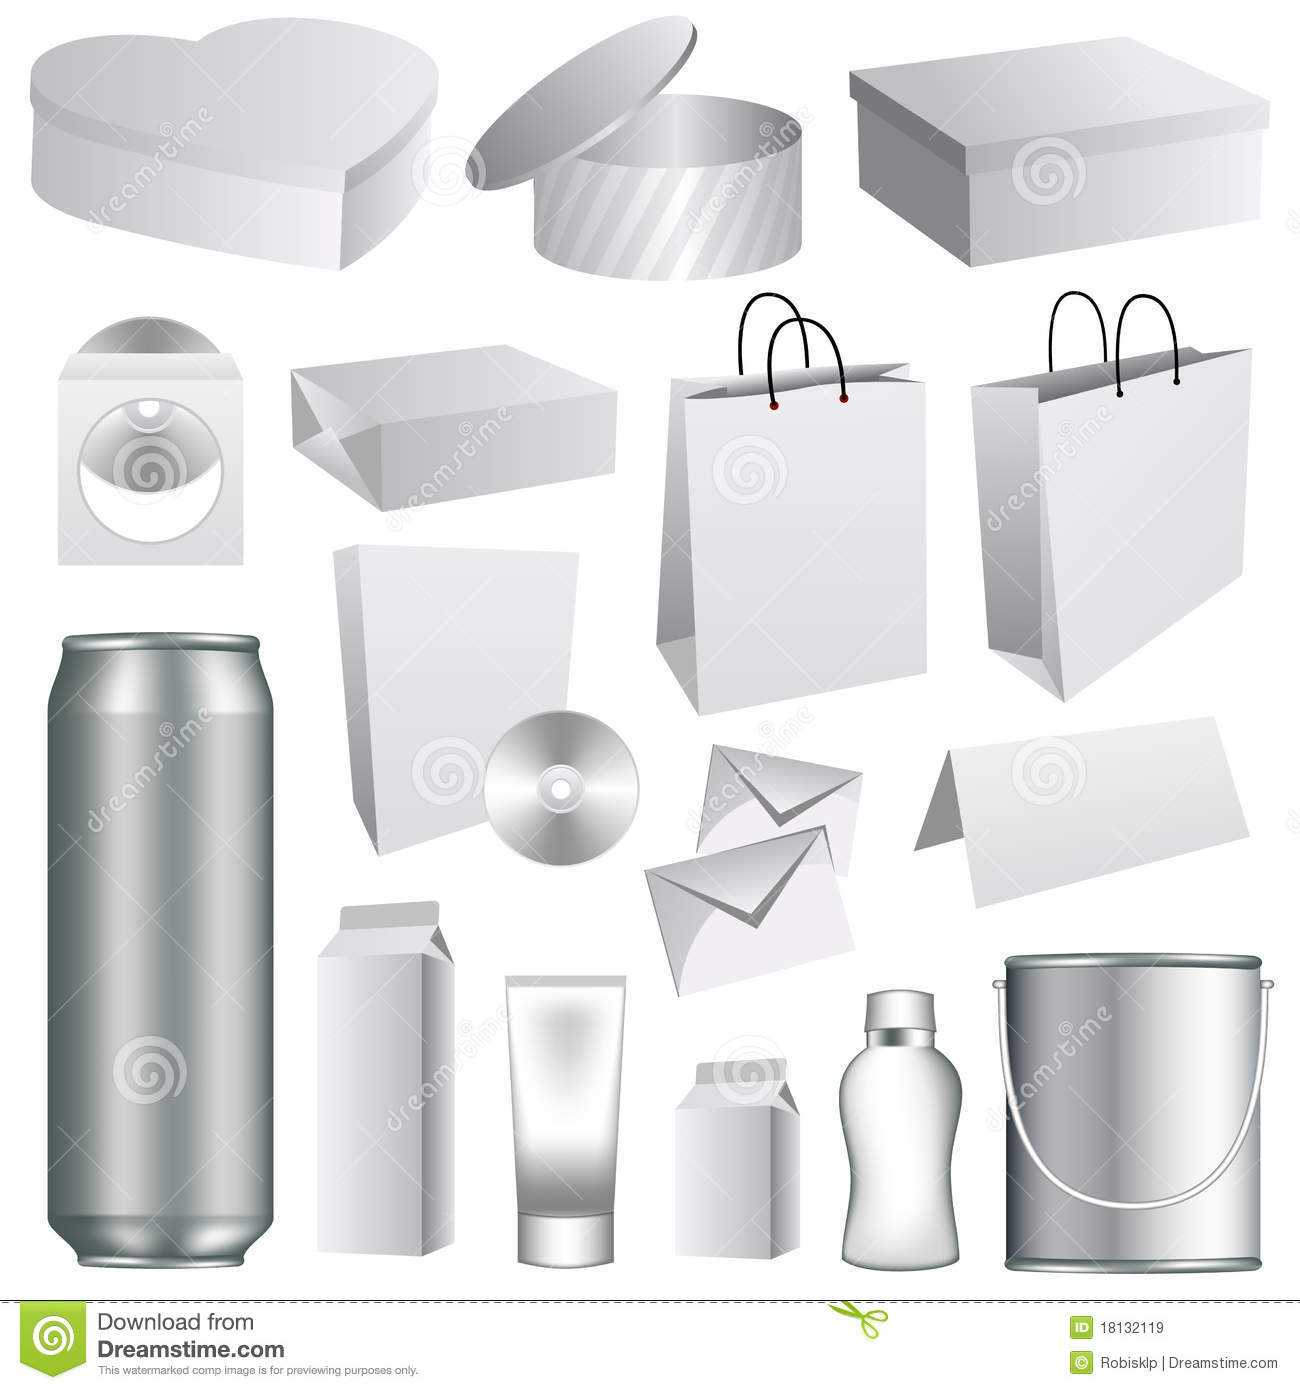 Blank Packaging Templates Stock Vector. Illustration Of For Blank Packaging Templates